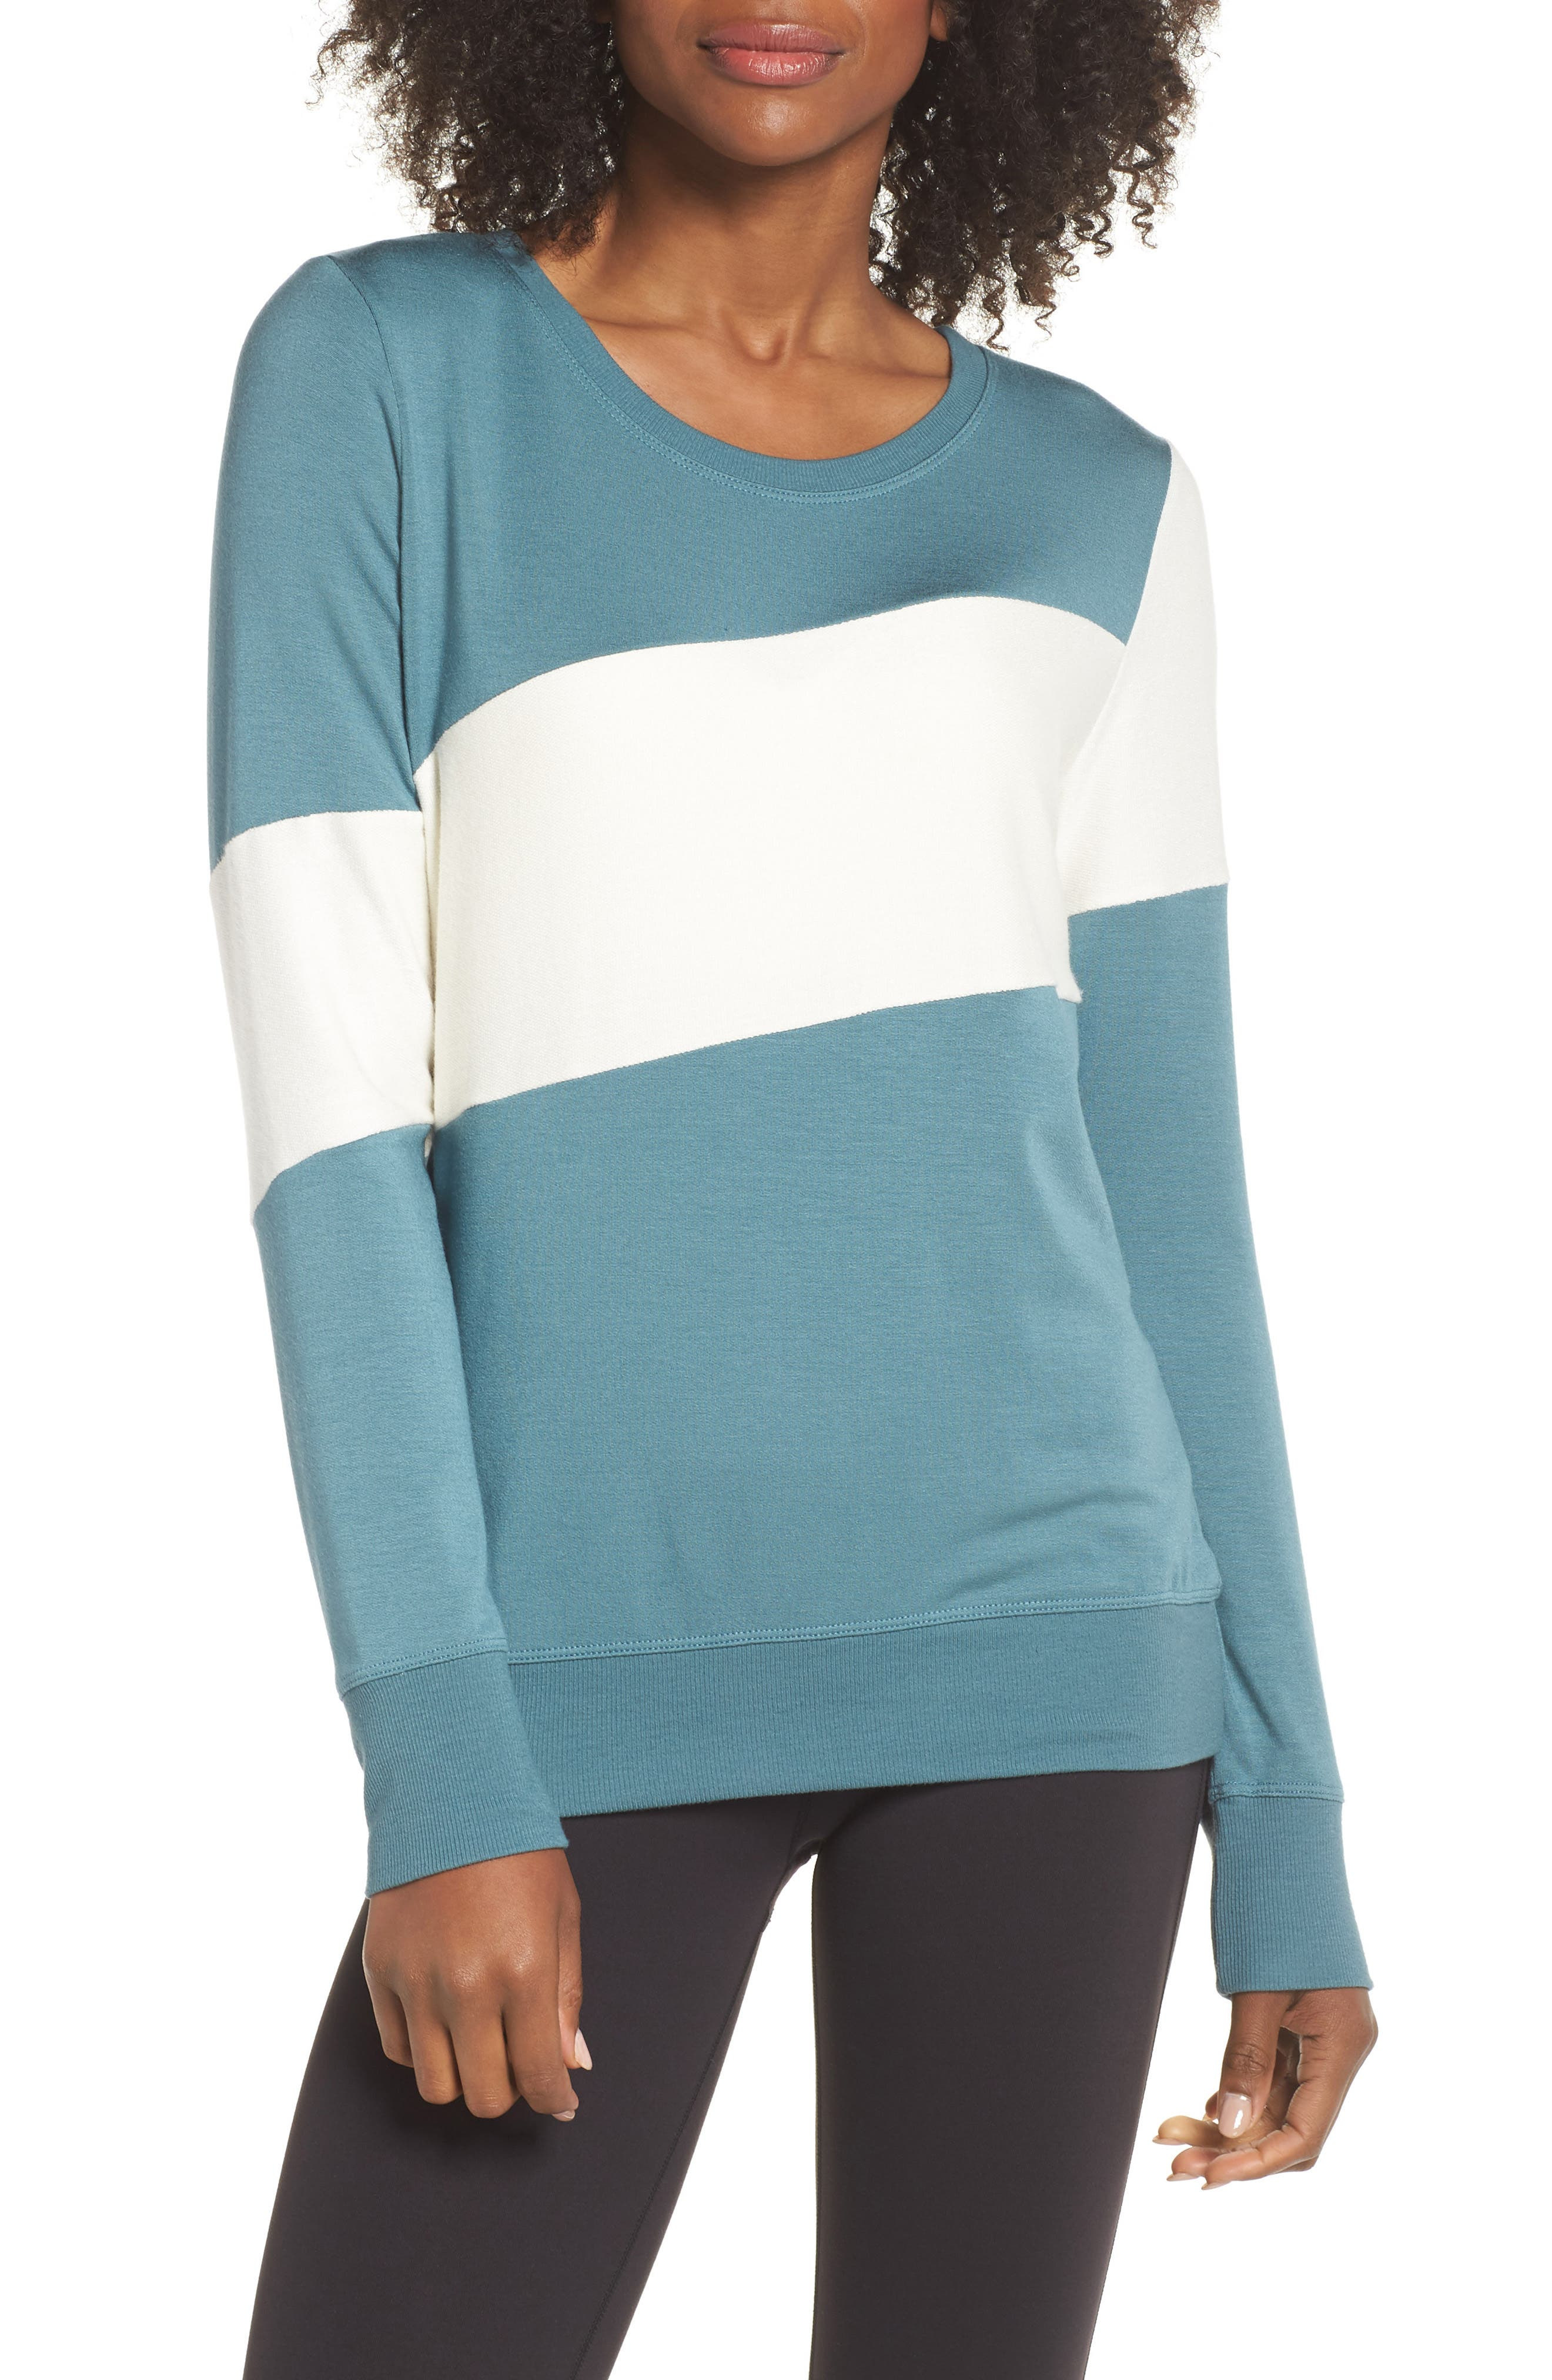 Ramp Sweatshirt,                         Main,                         color, BLUE SURF/ OFF WHITE